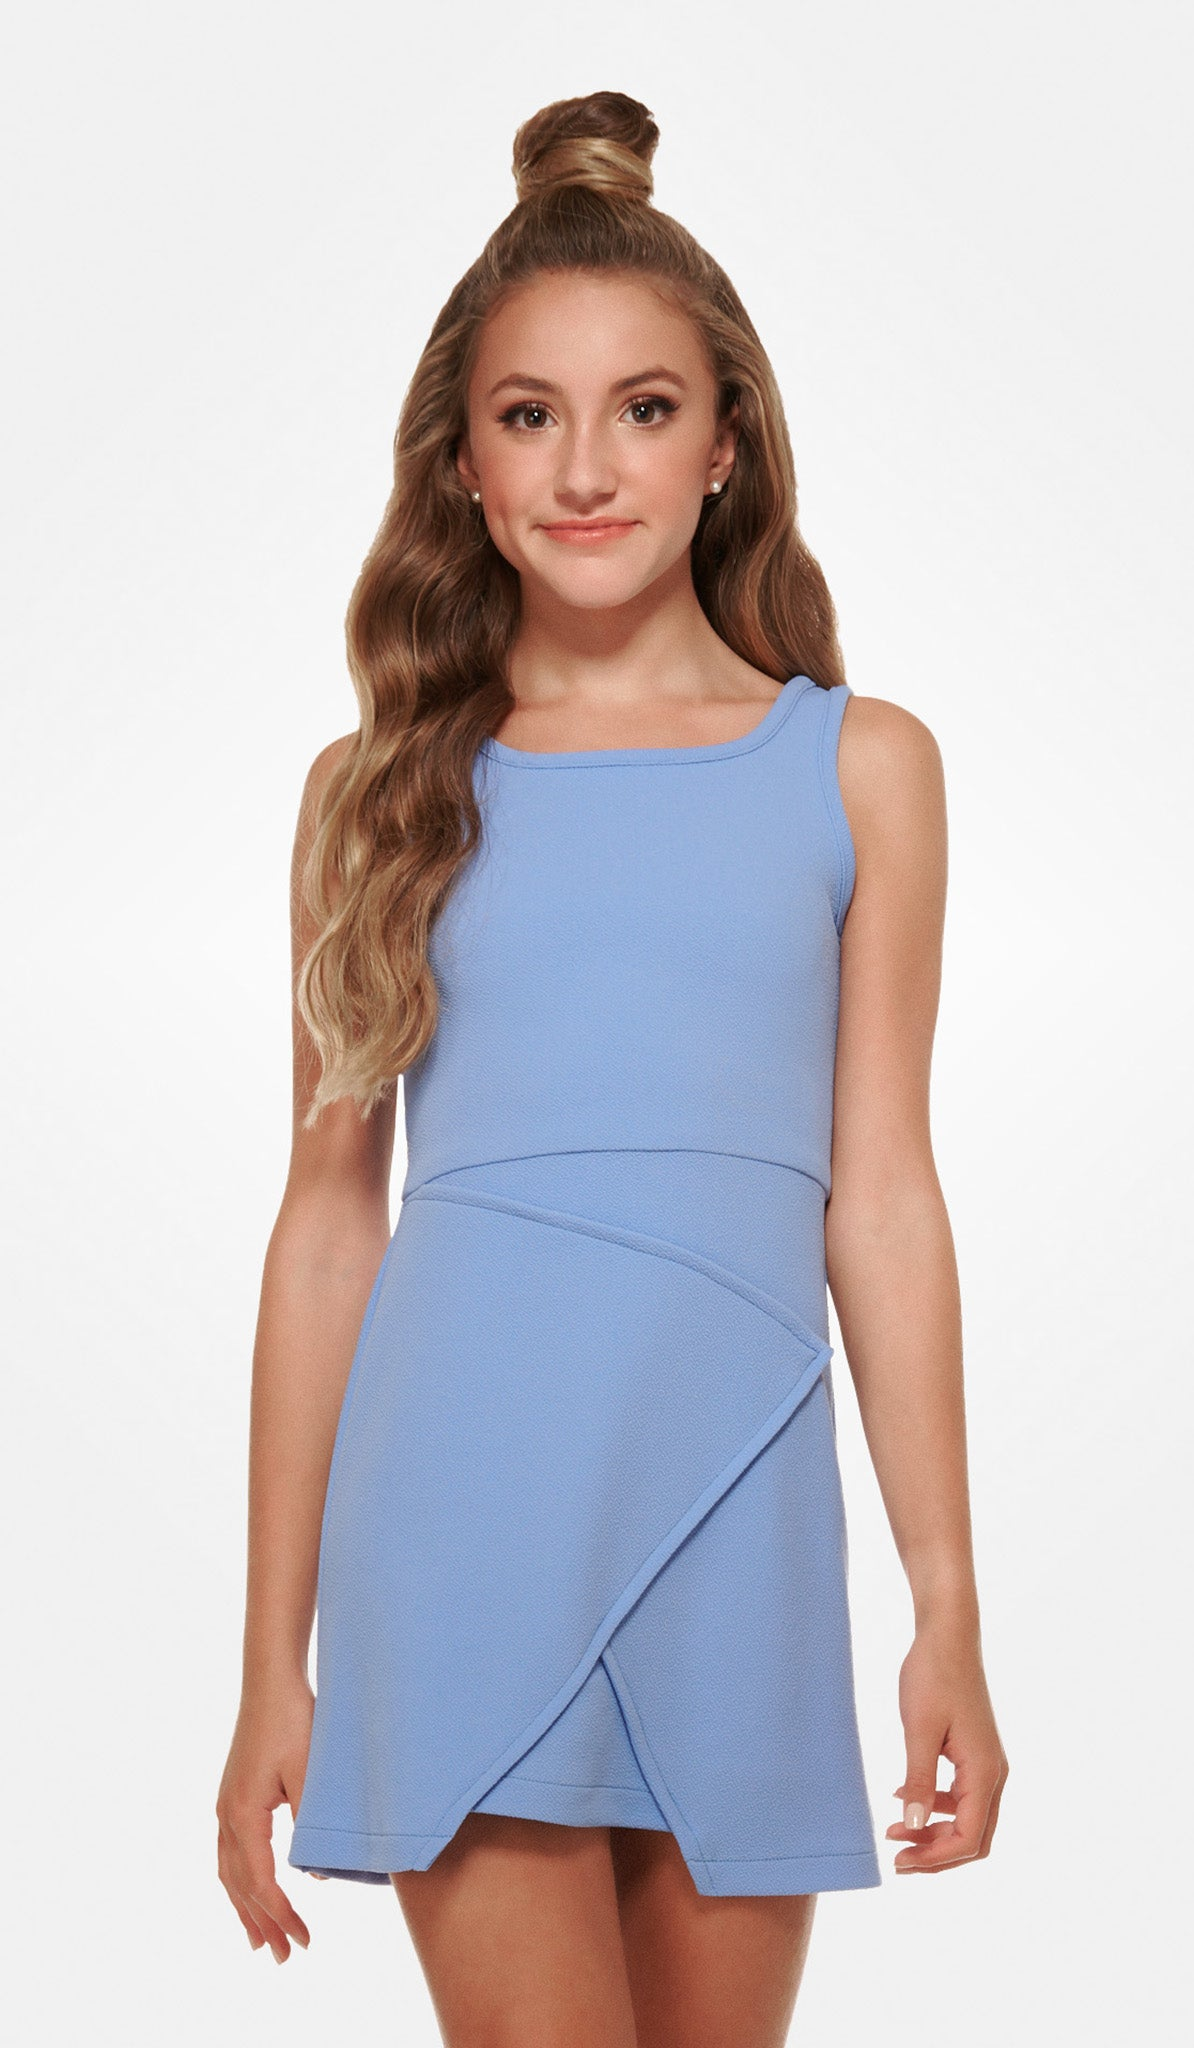 The Sally Miller Nicole Dress: Peri textured stretch knit envelope A-line dress